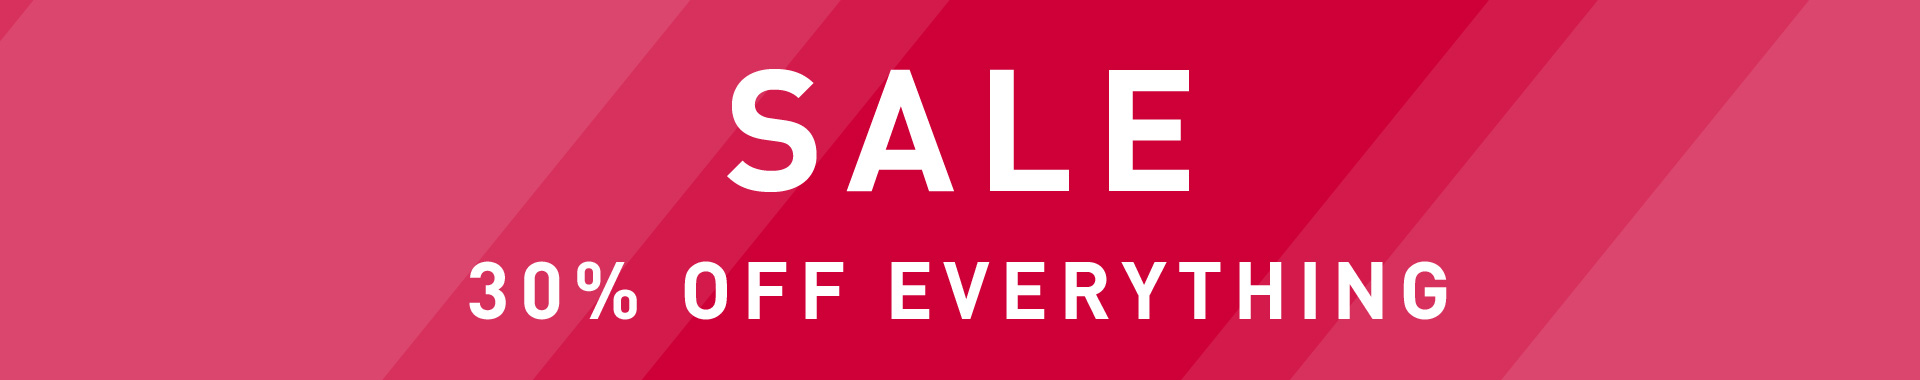 Sale -30% off everything